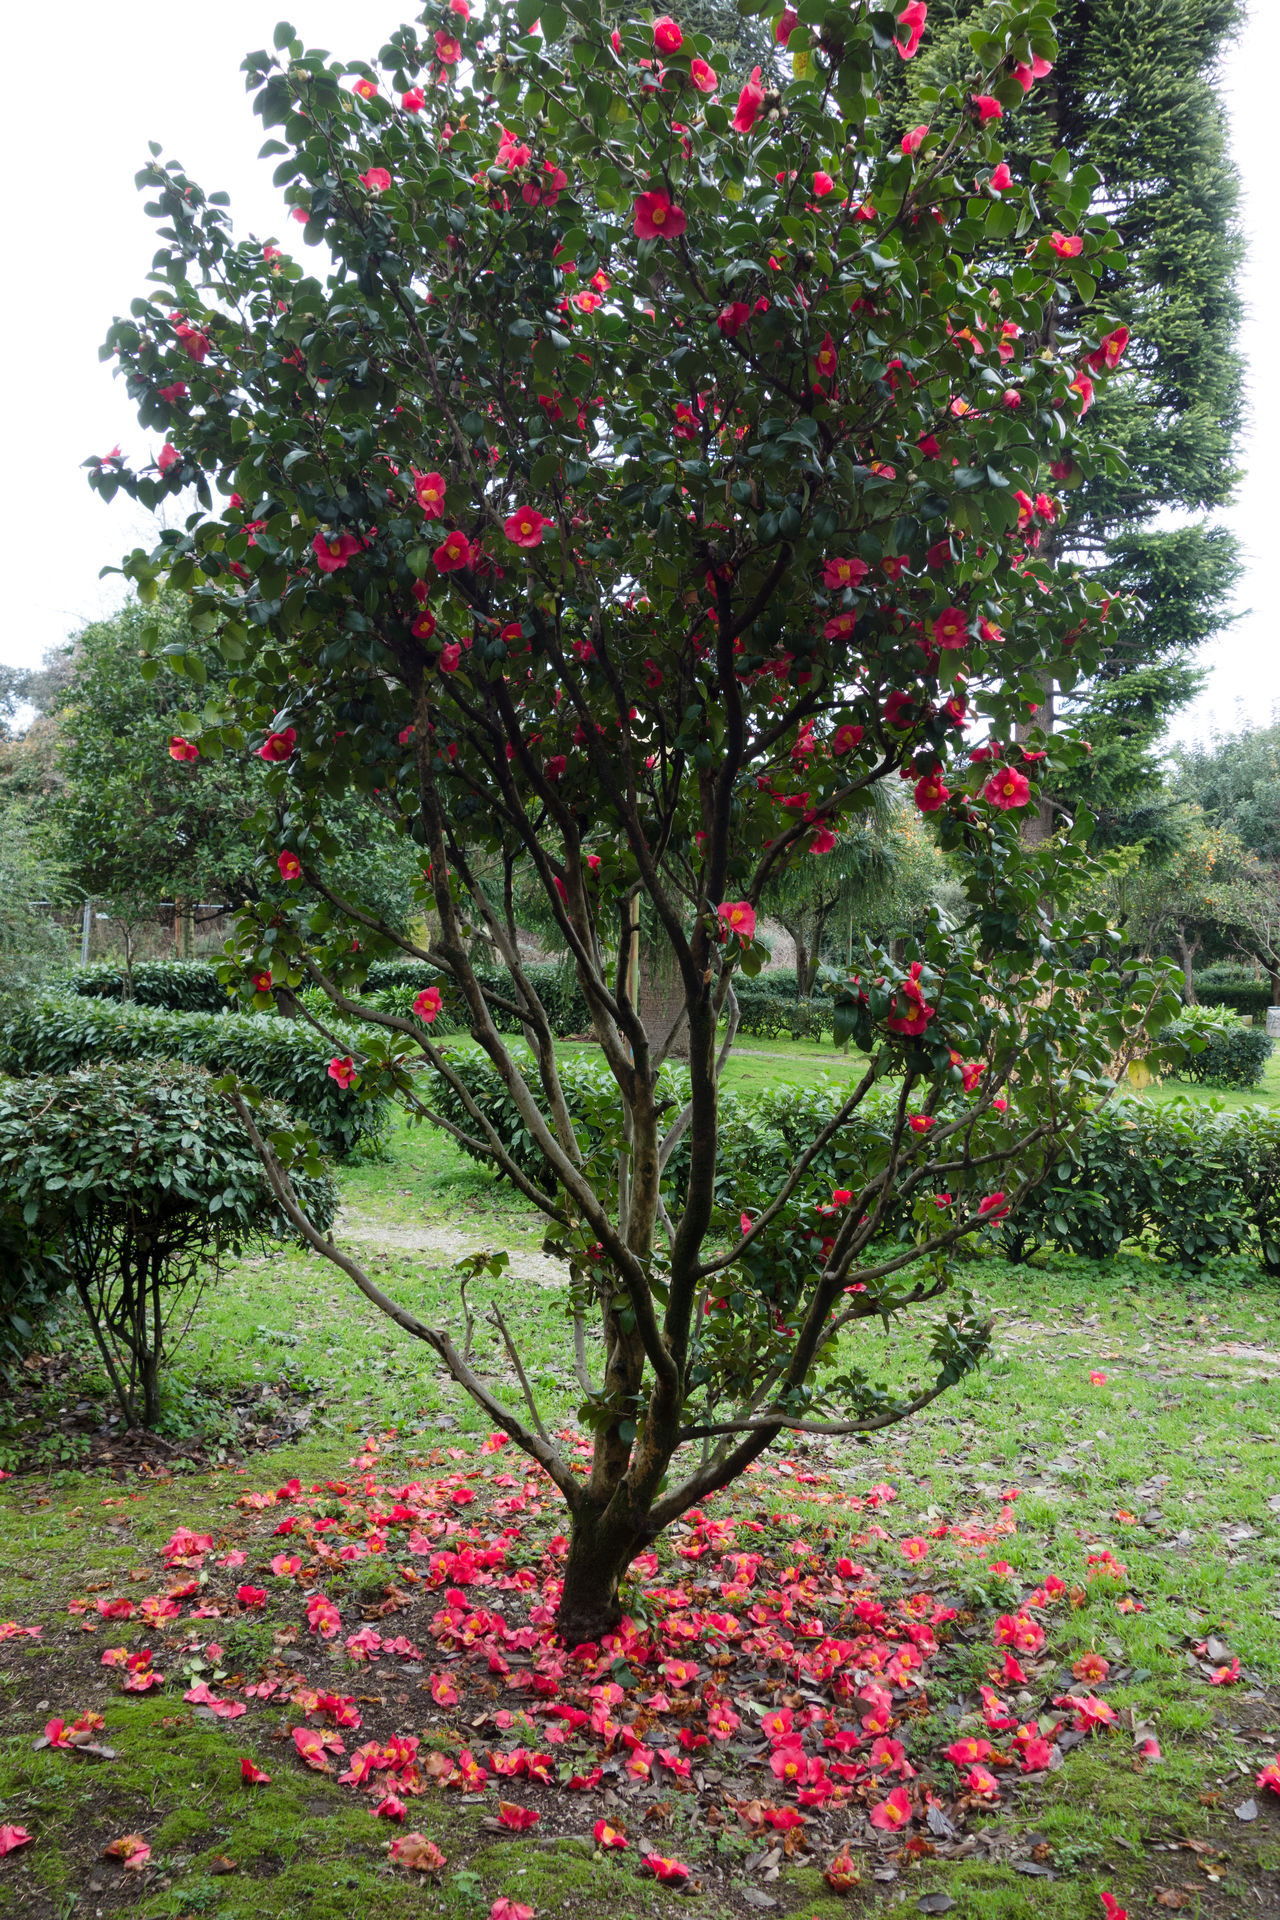 camellia plant with flowers Beauty In Nature Blossom Camellia Camellia Flower Camellia Japonica Close-up Day Flower Freshness Fruit Growth Nature No People Outdoors Red Tree